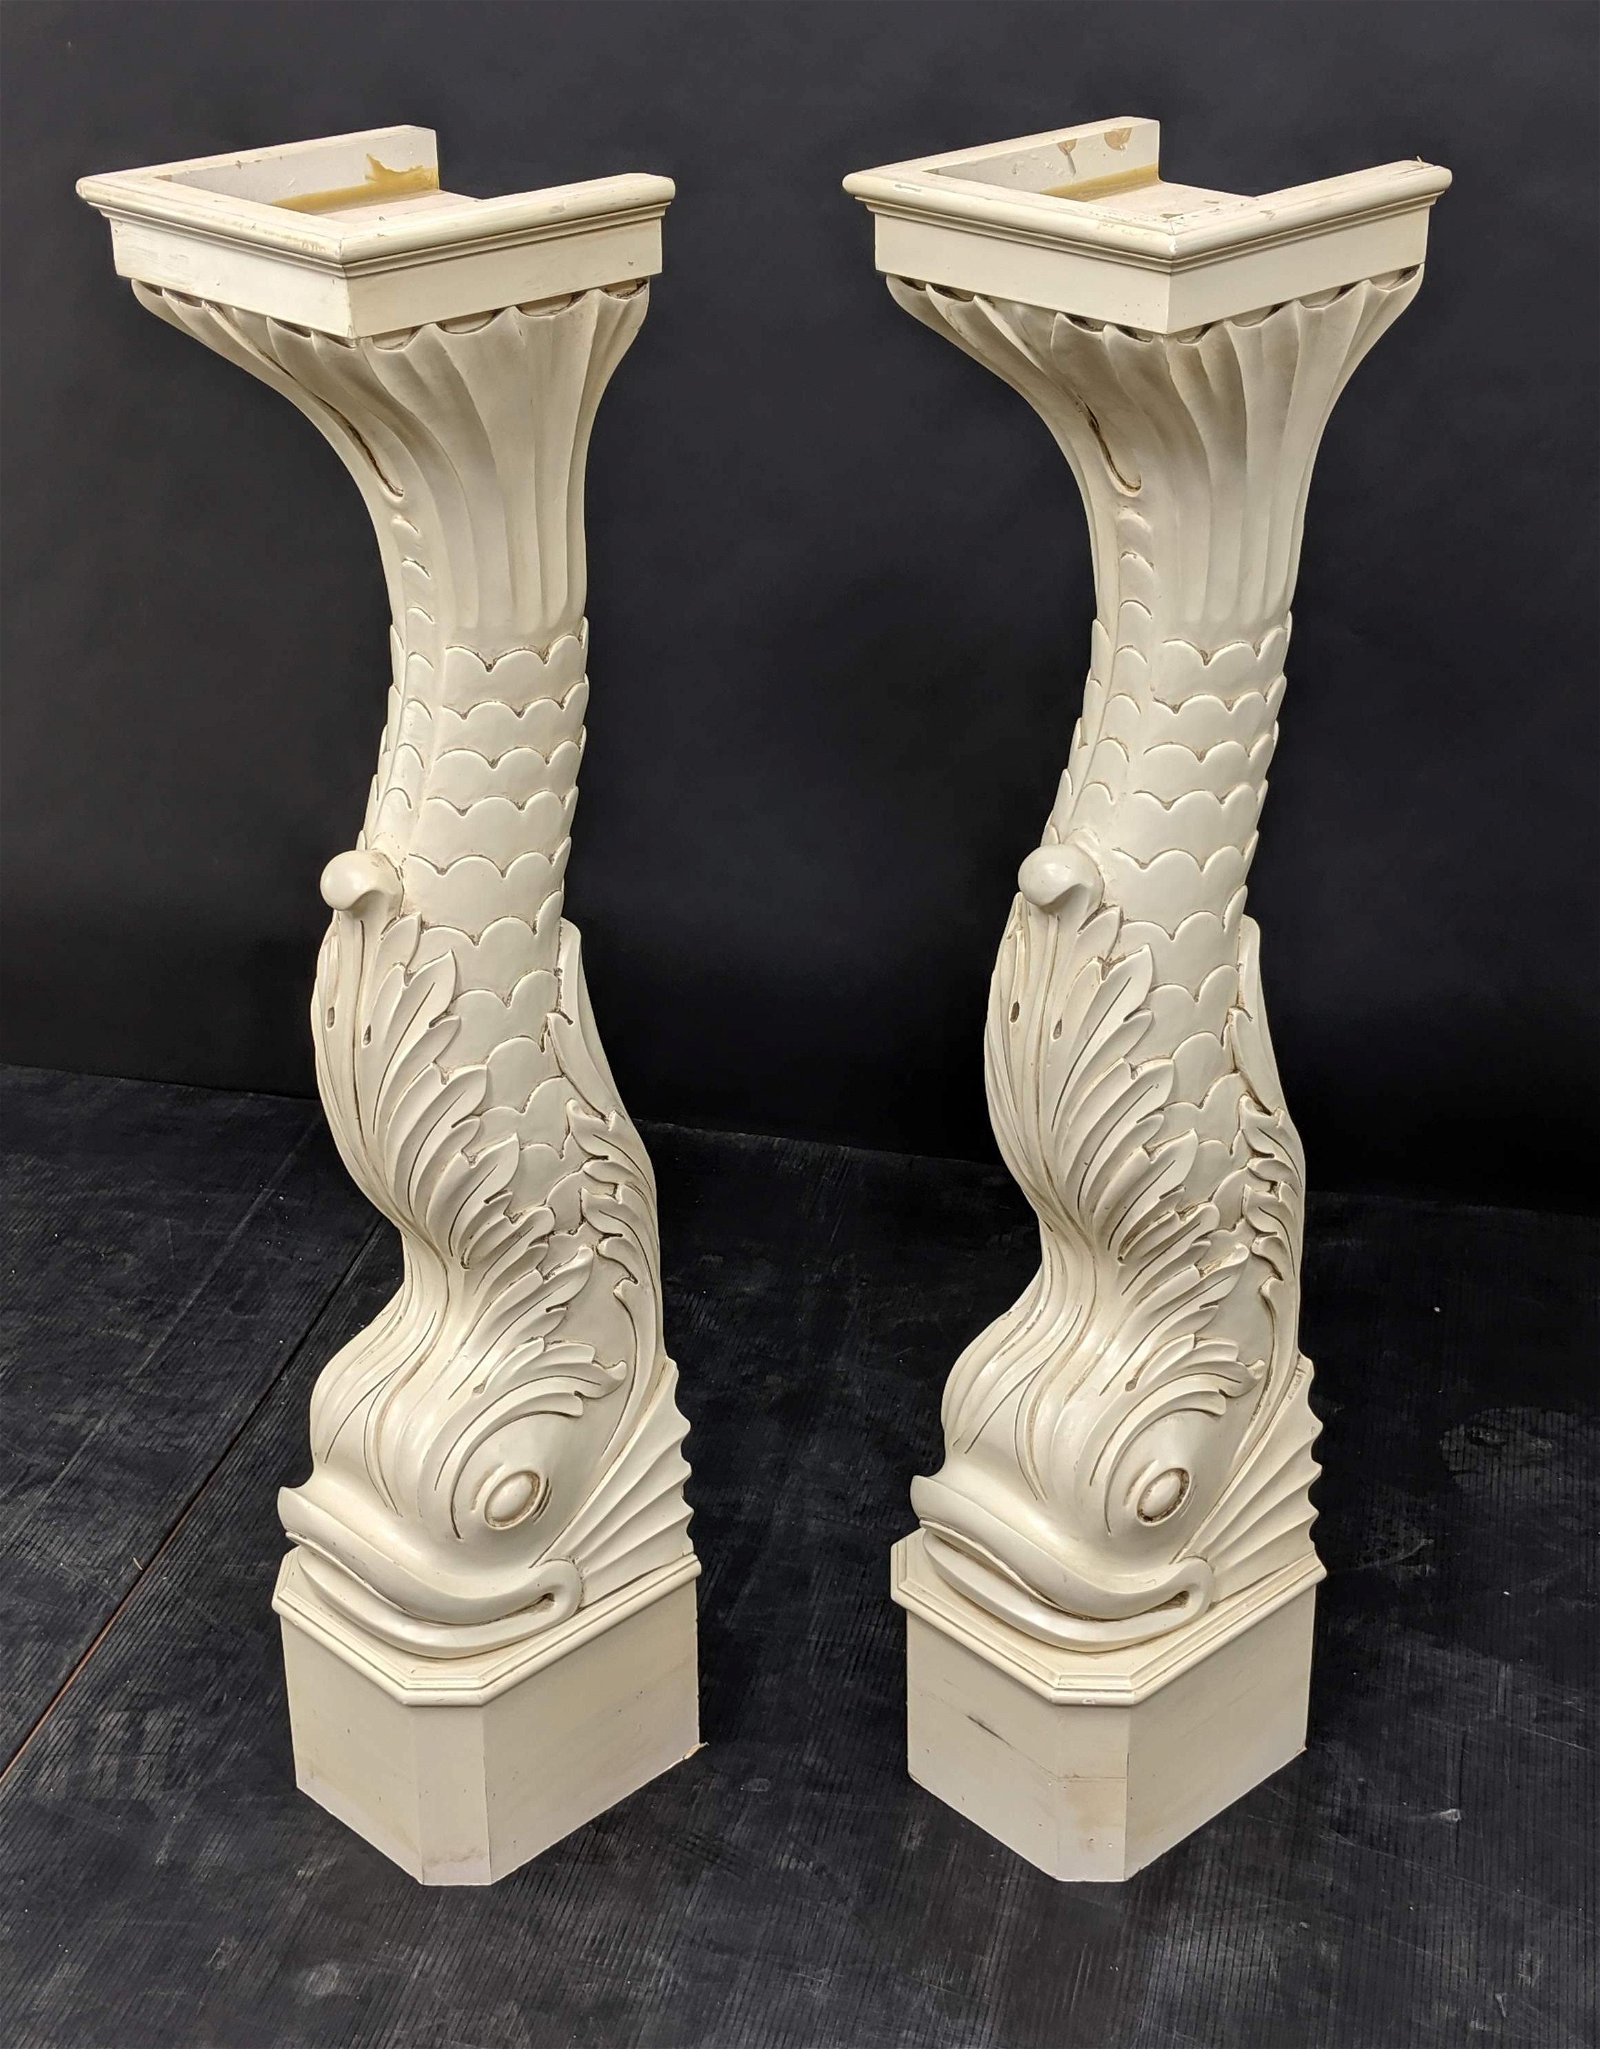 Pr Figural Dolphin Wall Mounted Brackets. Carved Wood w